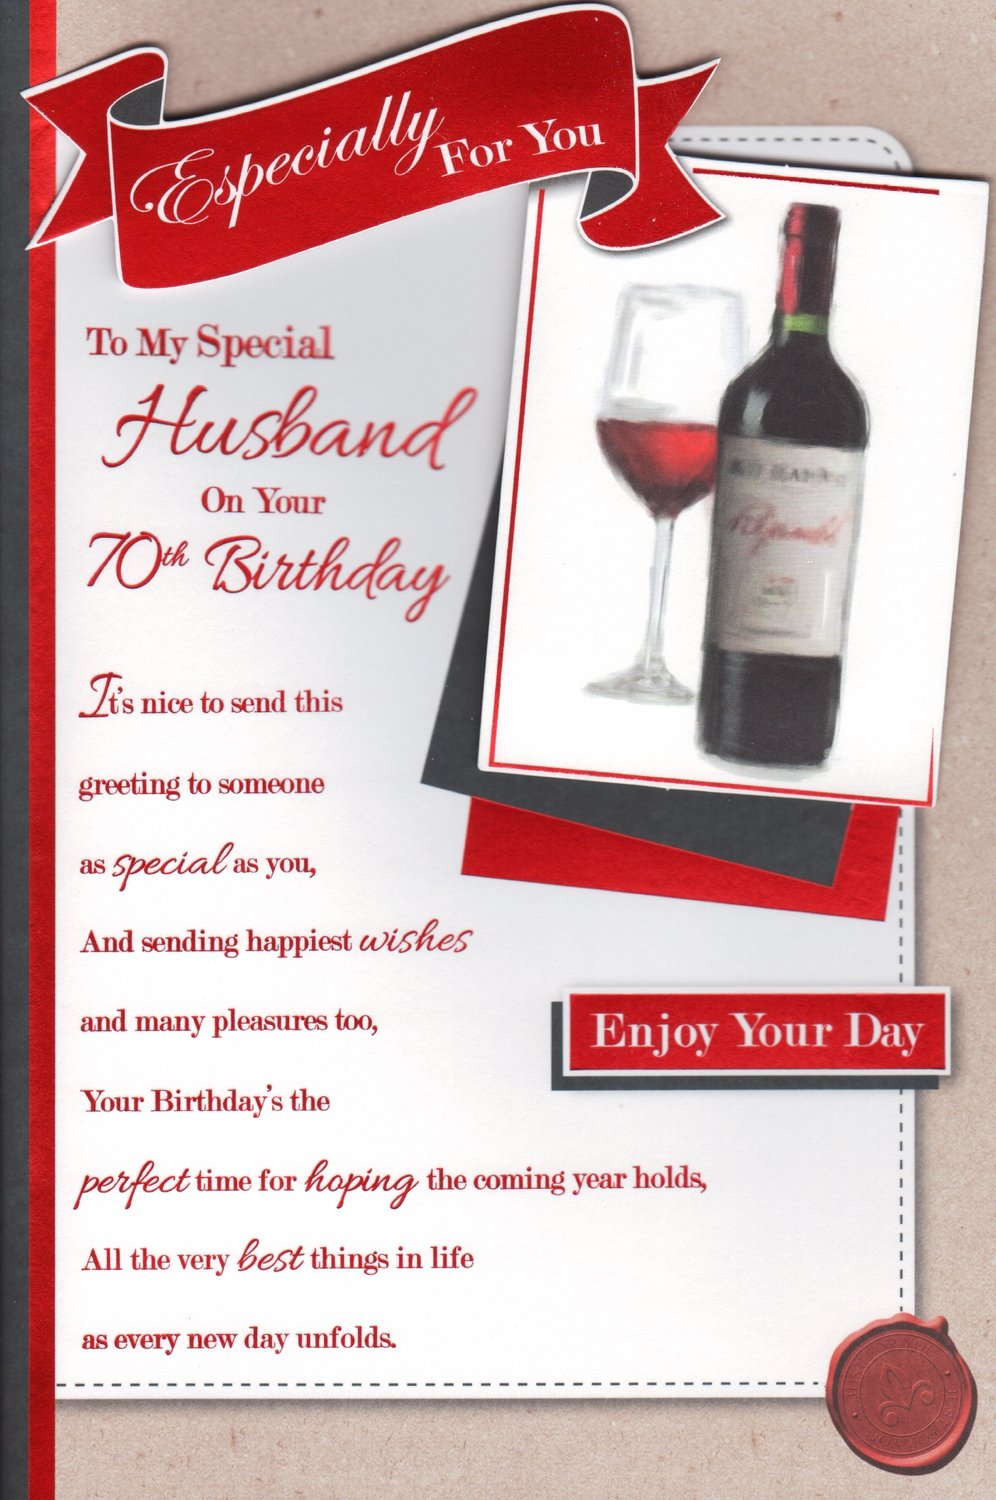 Husband 70th birthday card especially for you to my special husband 70th birthday card especially for you to my special husband on your 70th birthday amazon garden outdoors bookmarktalkfo Images